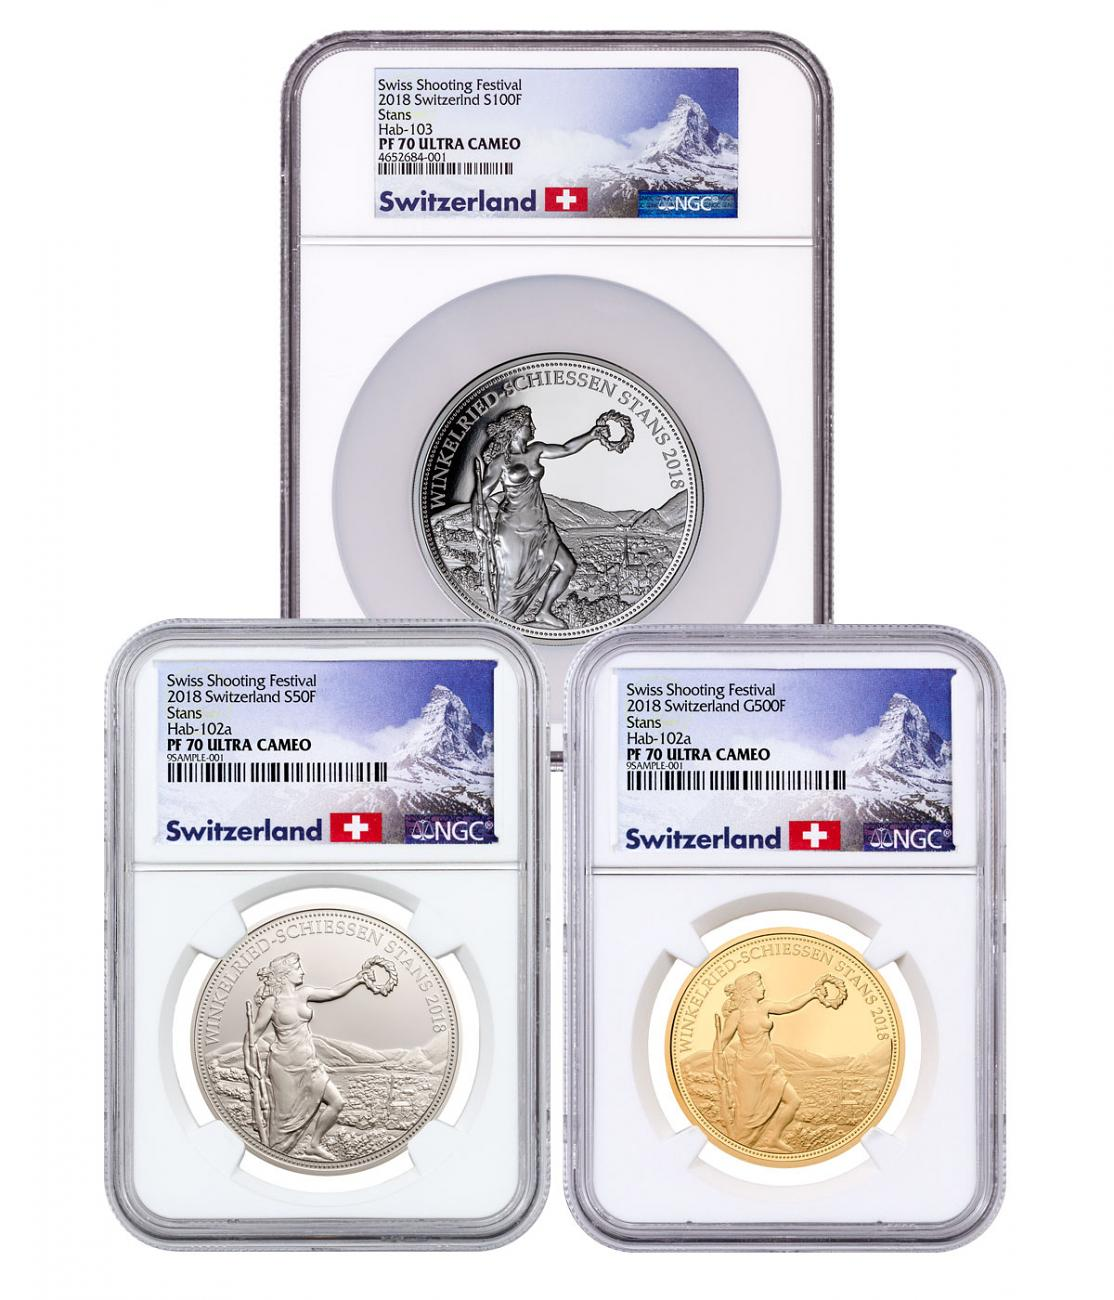 2018 Switzerland Shooting Festival Thaler - Winkelreid 3-Coin Set Gold Proof Coin NGC PF70 UC Exclusive Switzerland Label